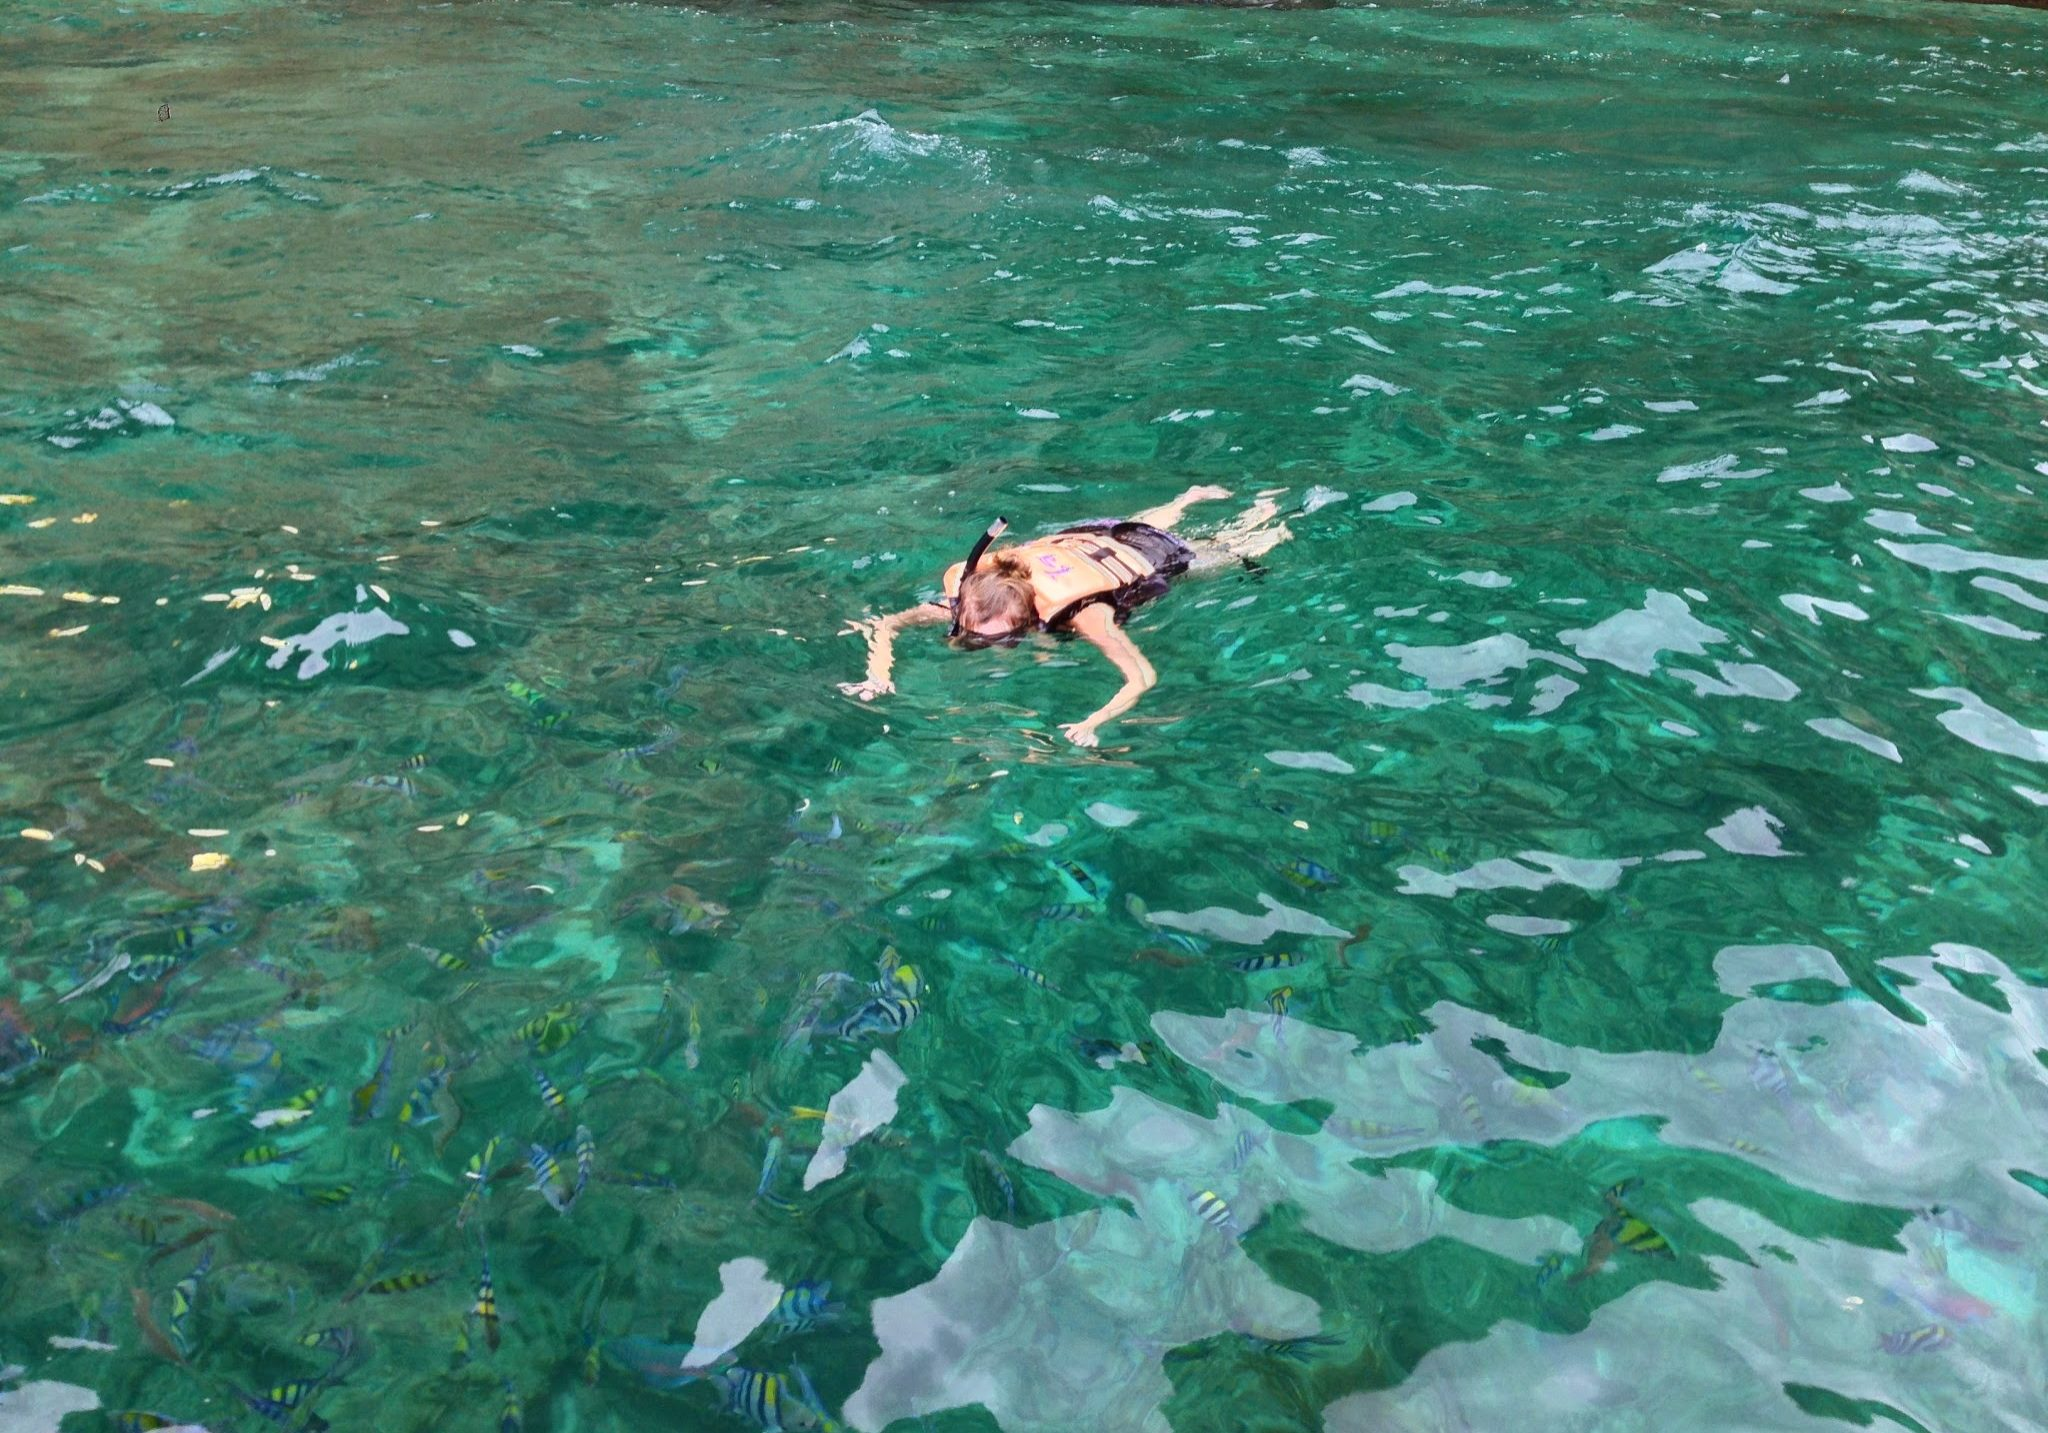 Snorkelling, Koh Phi Phi, thailand, islands, sea, water, beach, fish, marine, marine life, travelling, backpacking, travels, diving, long-tail boat, trips. mermaid,